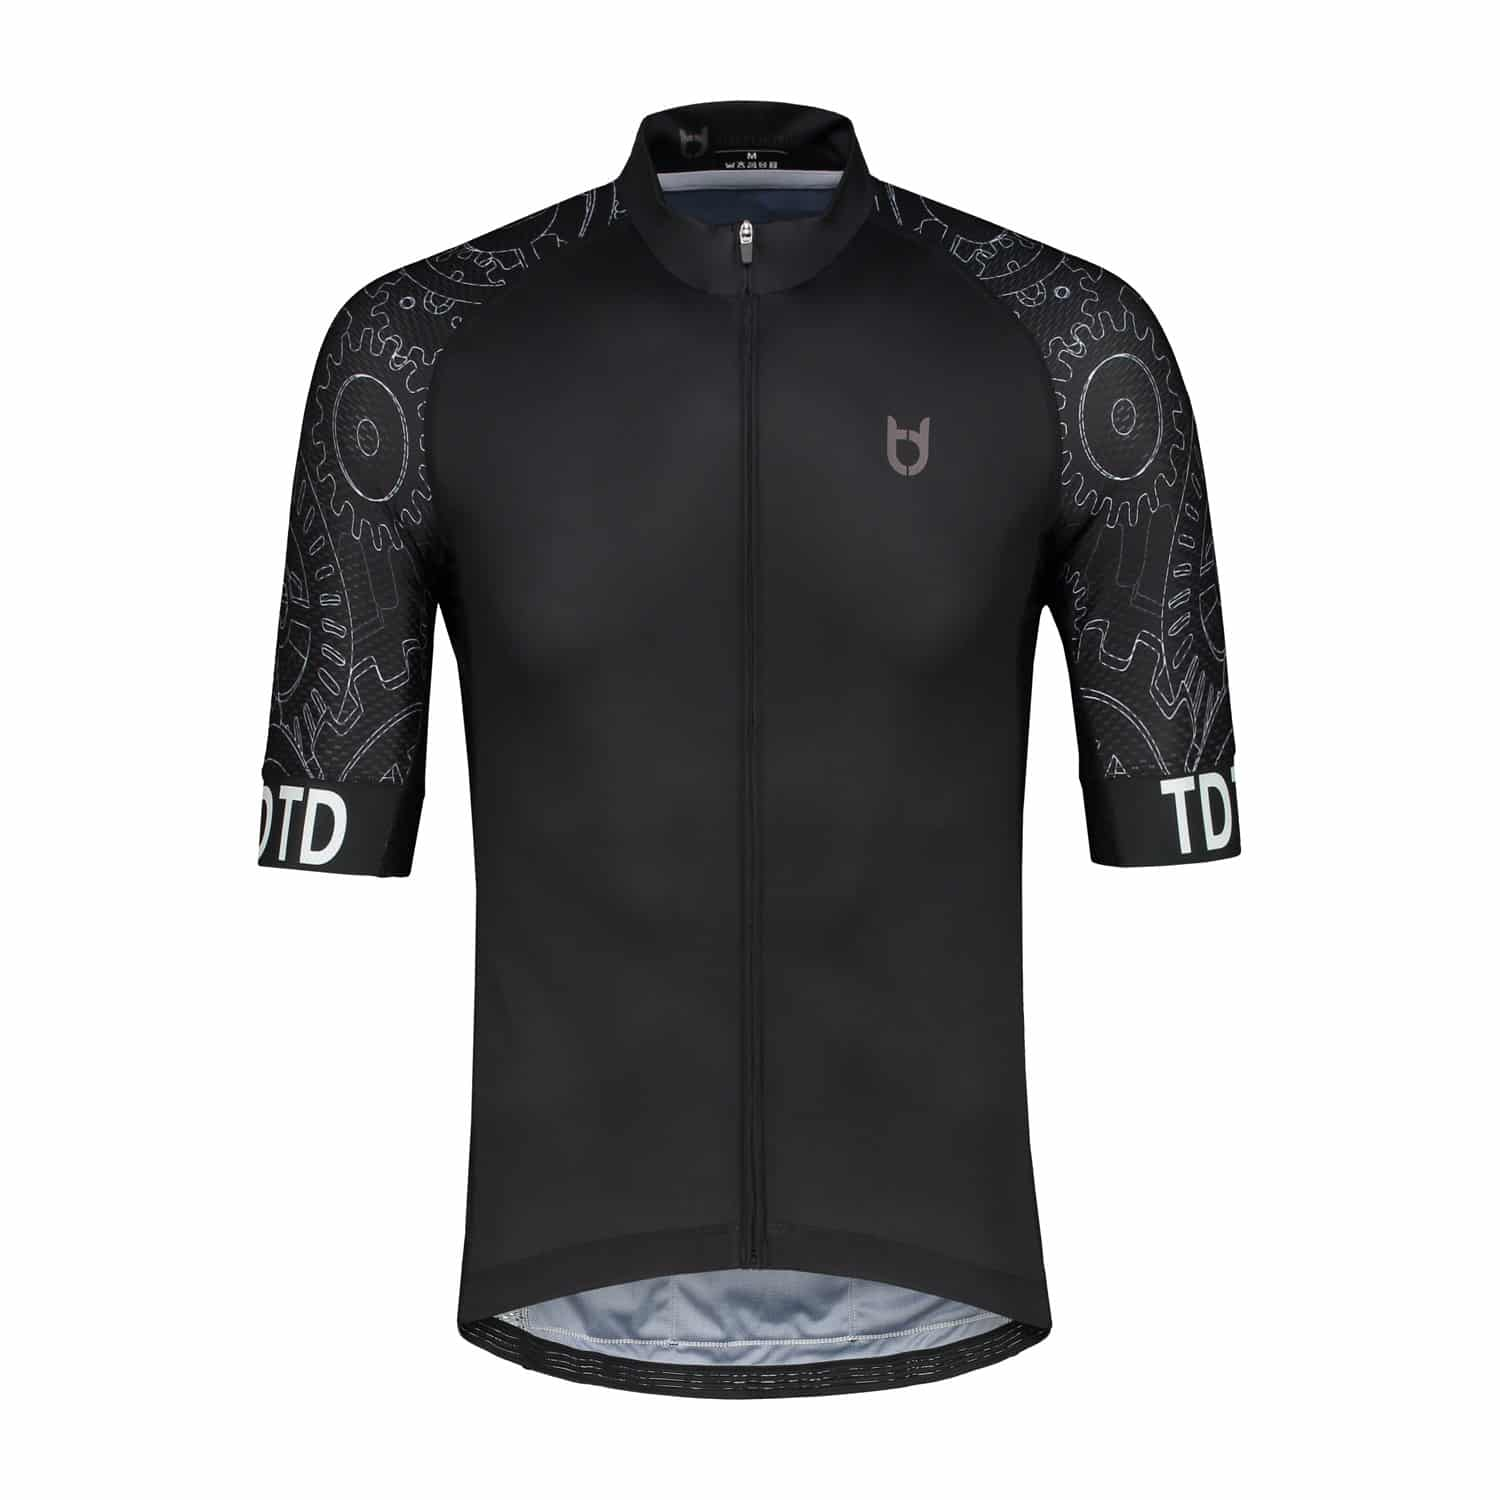 High quality black mechanic cycling jersey td sportswear